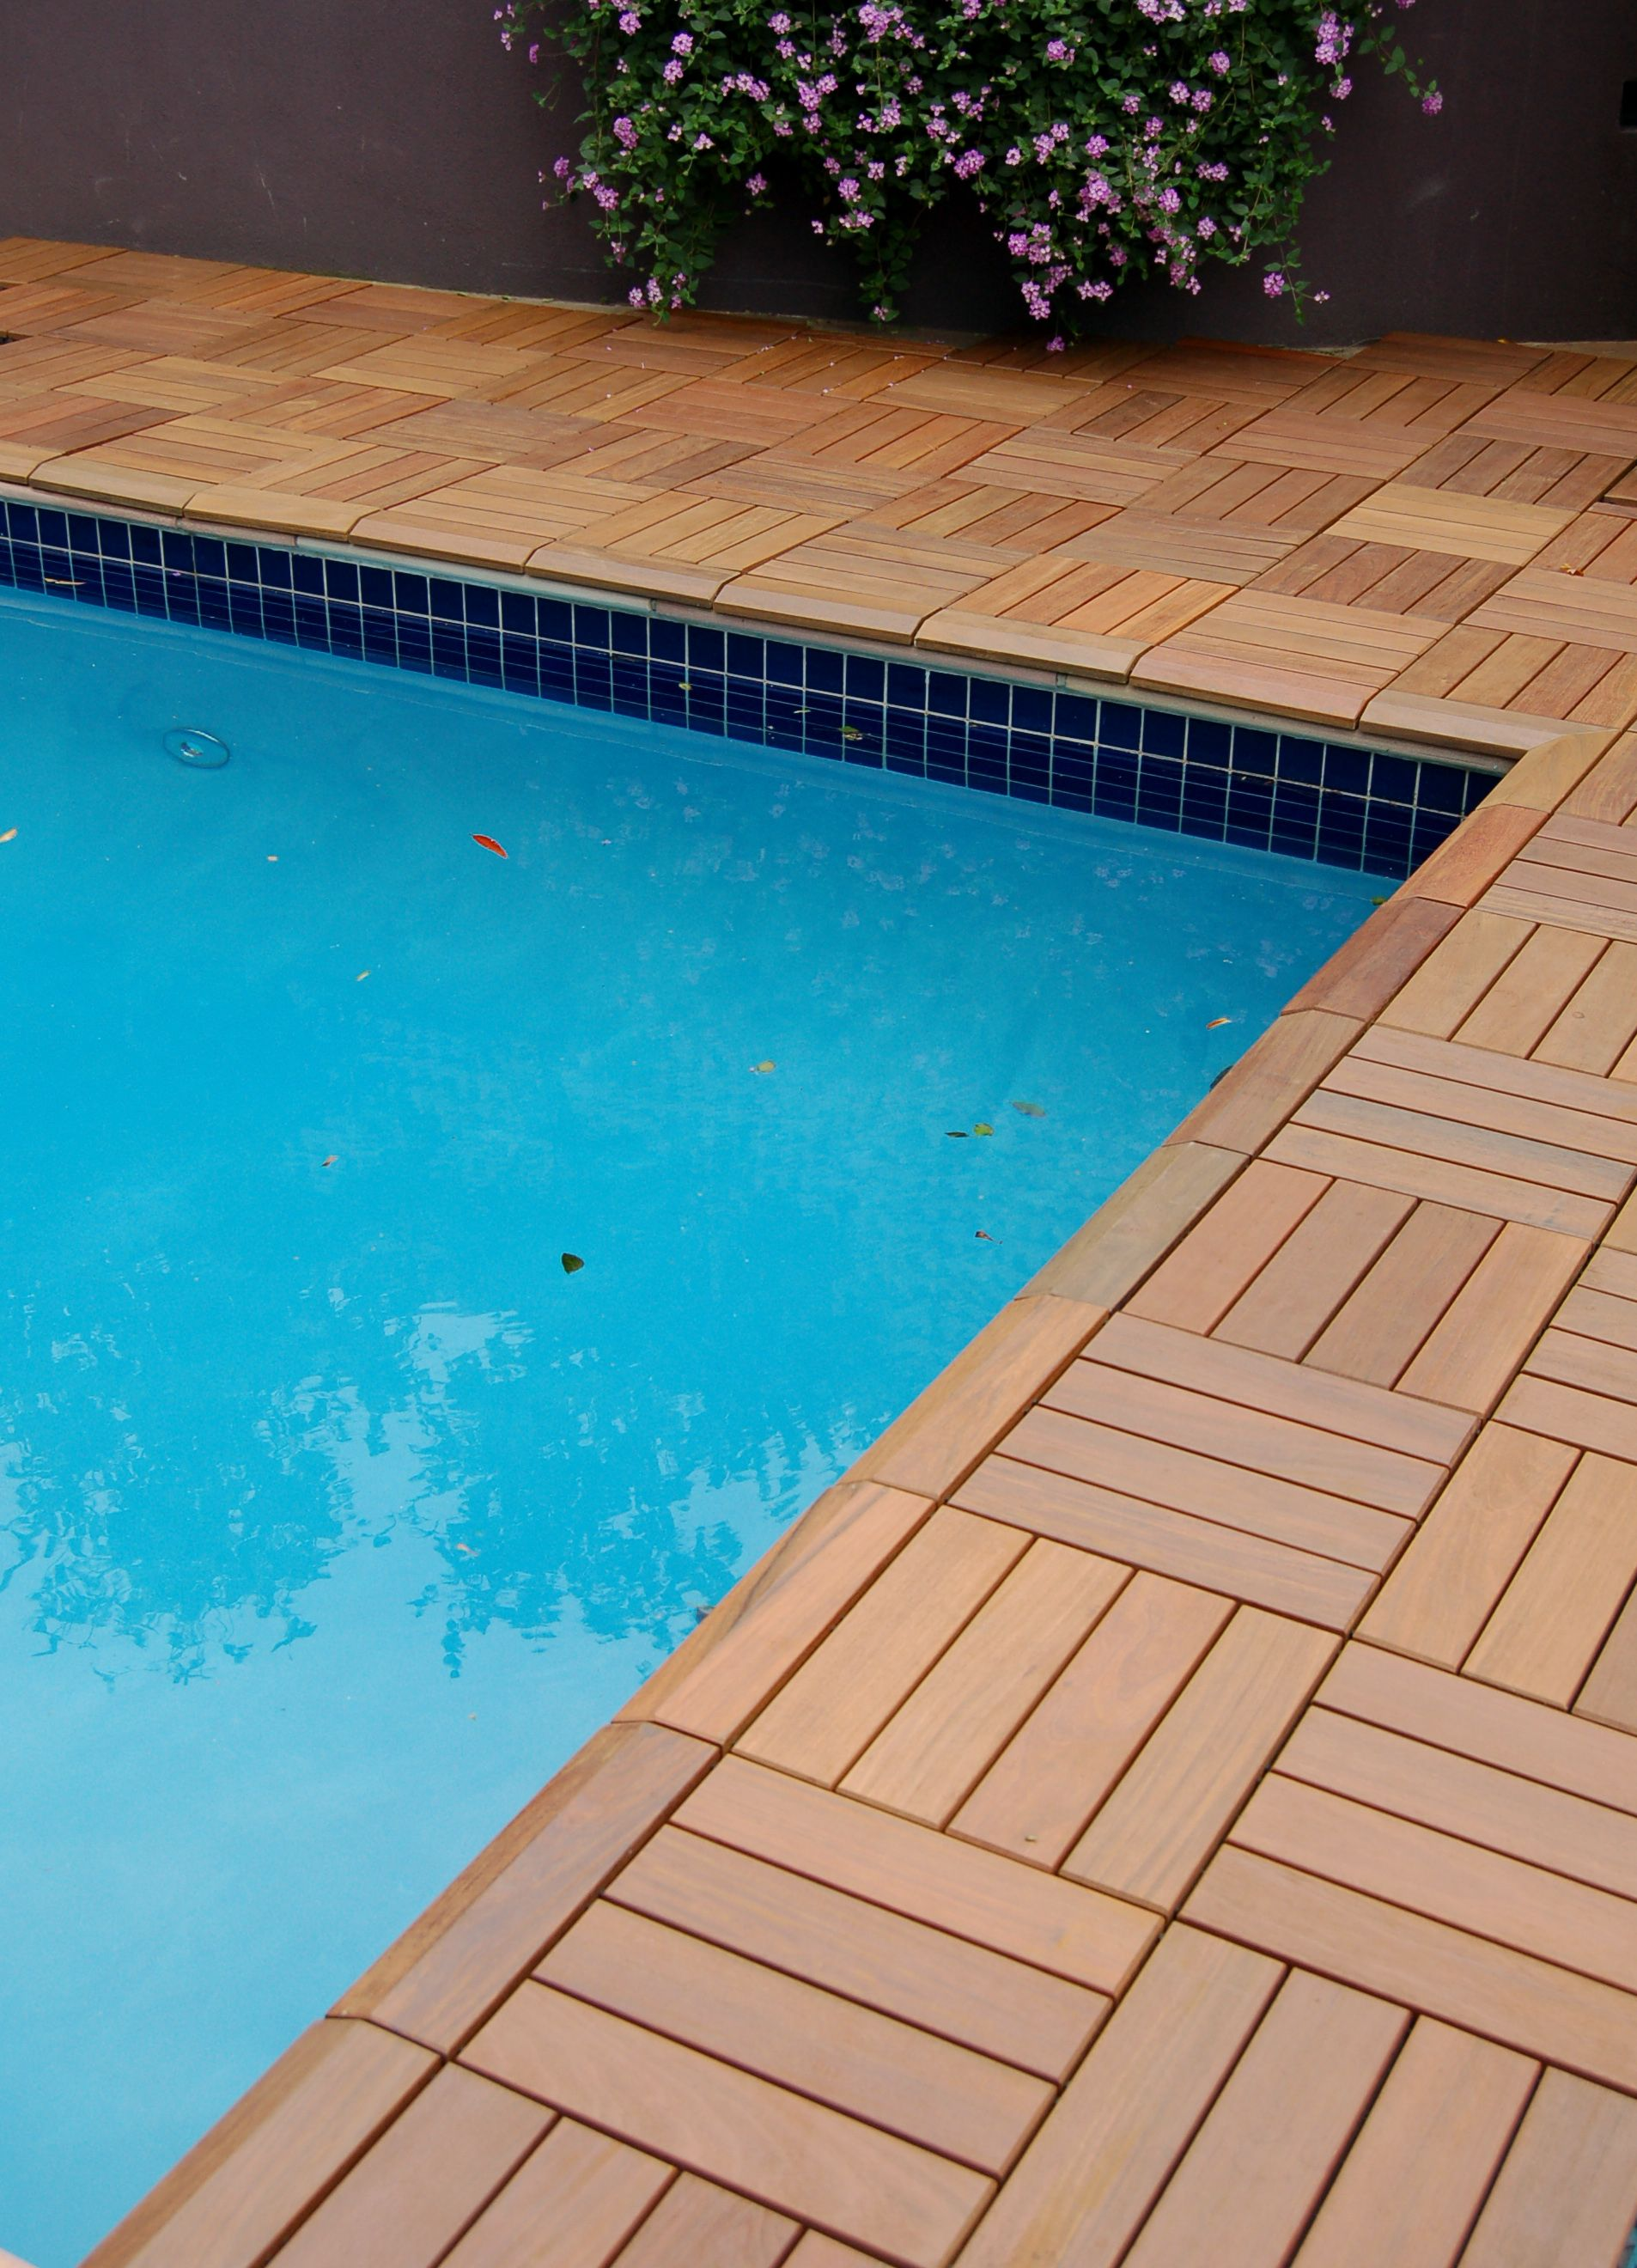 Swiftdeck Wood Patio Tiles Right To The Pool Edge Pool Deck Tile Pool Decks Swimming Pool Decks